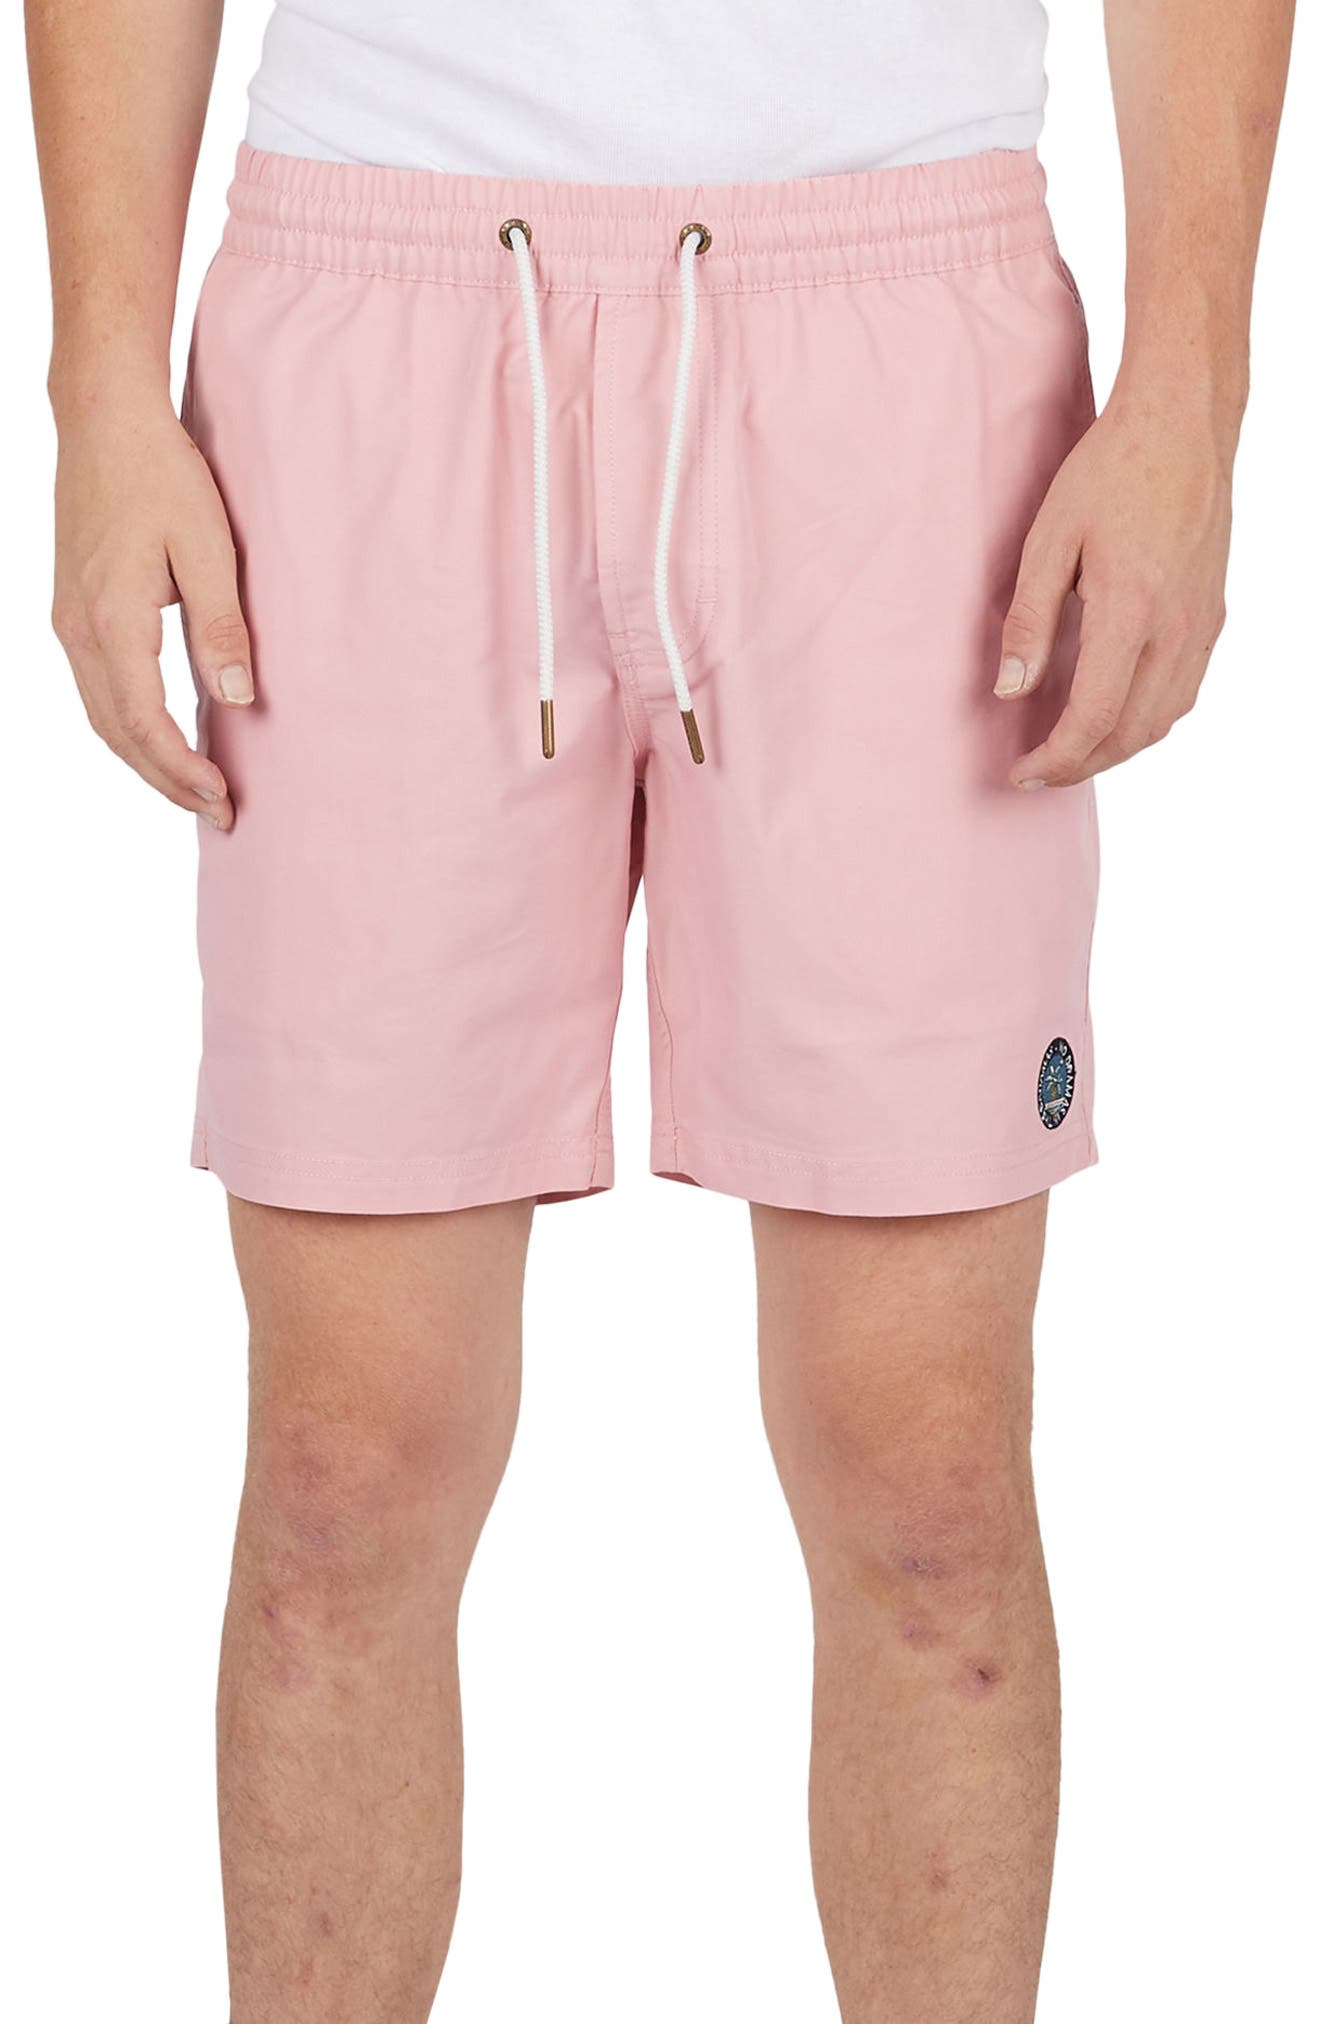 Amphibious Shorts,                             Main thumbnail 1, color,                             661